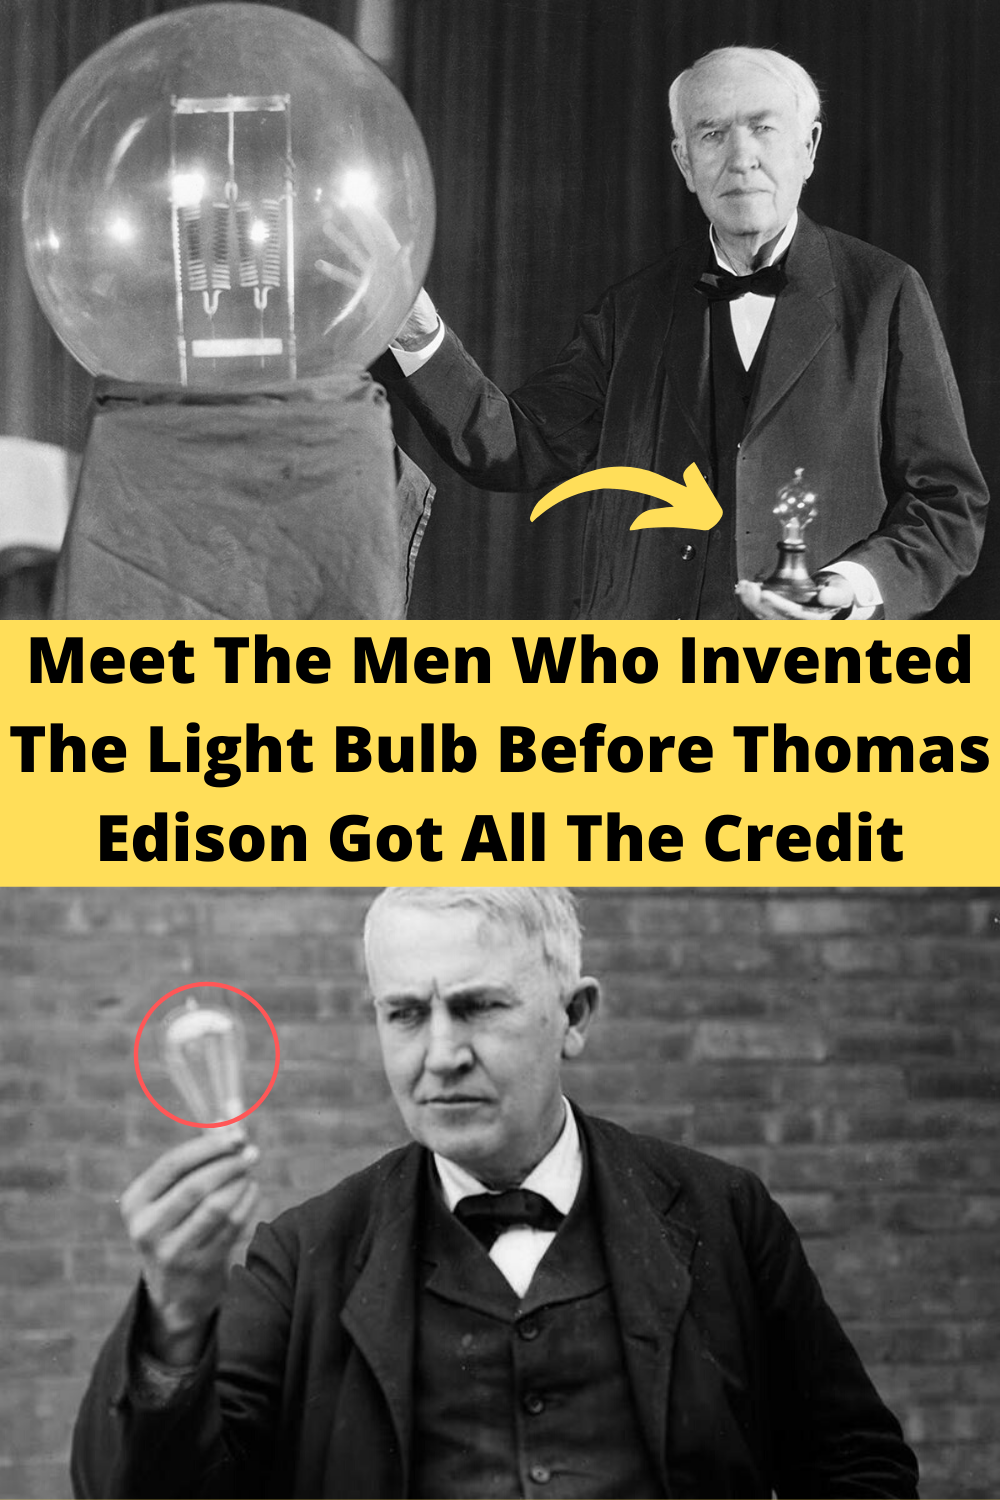 Nearly 80 years before Edison got his patent, these